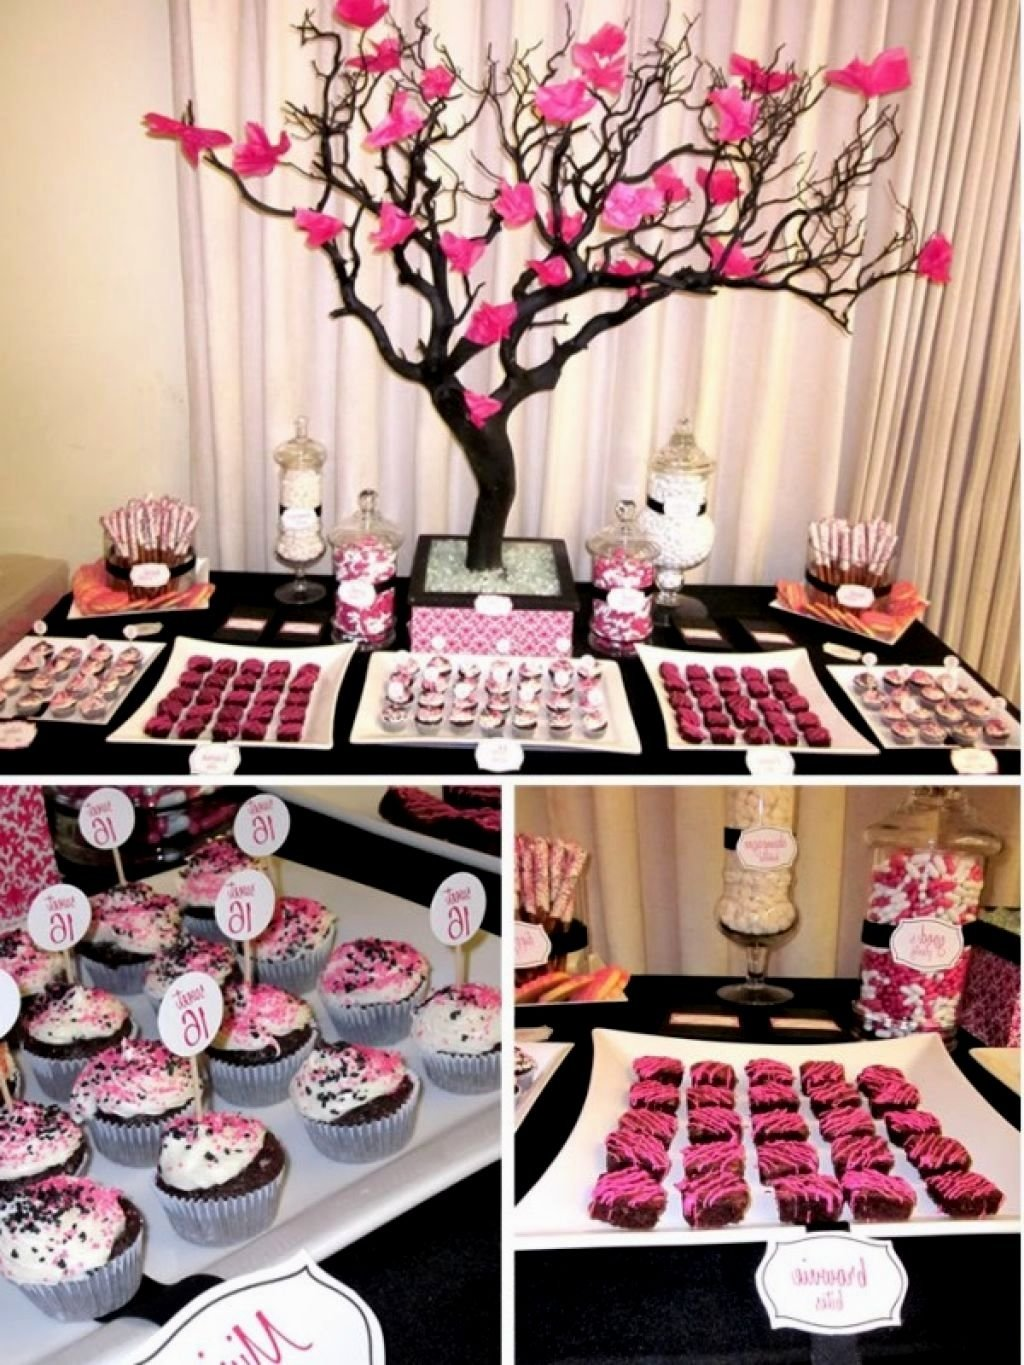 10 Beautiful Pink And Black Birthday Party Ideas pink and black party decor ideas decorating of party 1 2020